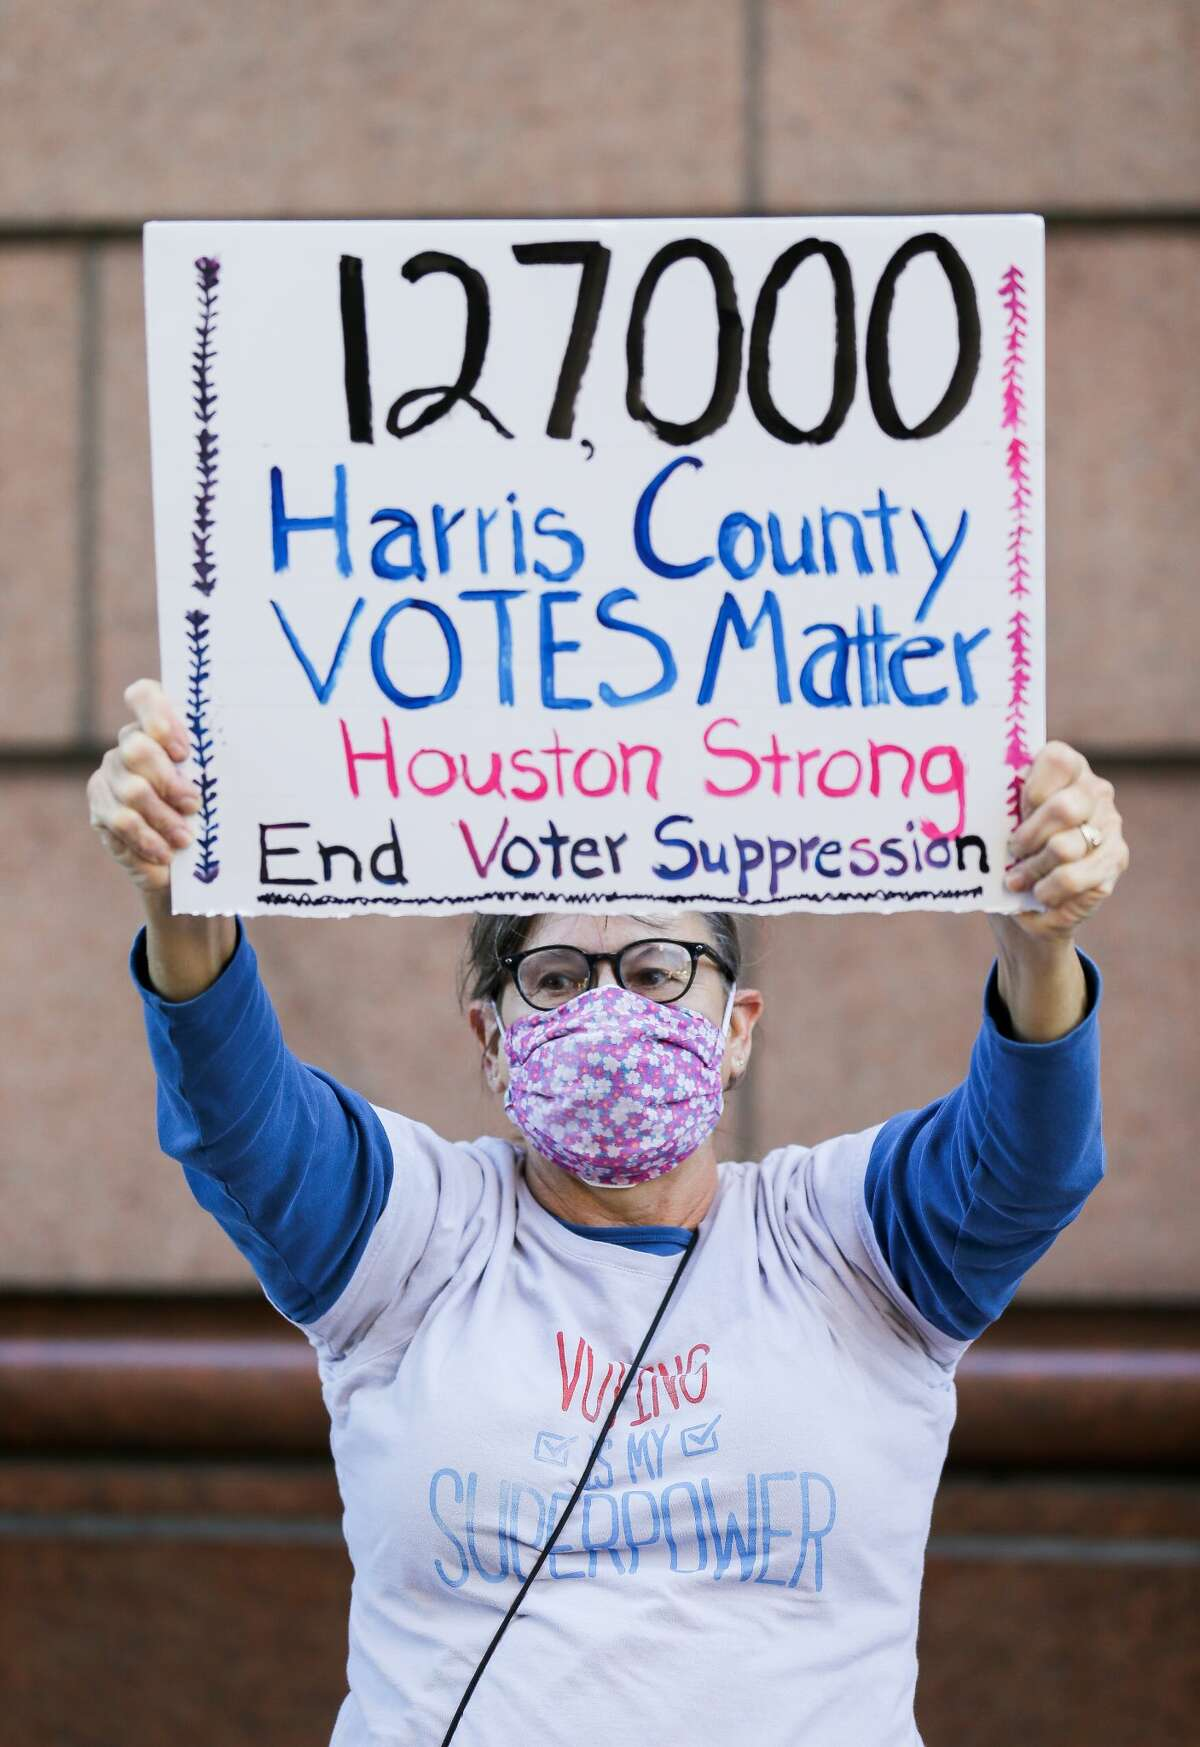 Gina Dusterhoft holds up a sign while being part of a group of demonstrators who gathered outside the Bob Casey Federal Courthouse to voice their support of drivethrough voting, which was available for early voters in Harris County, on Monday, Nov. 2, 2020, in Houston. Republicans politicians and activists filed a federal lawsuit in opposition to the voting method, which accounted for 127,000 votes.